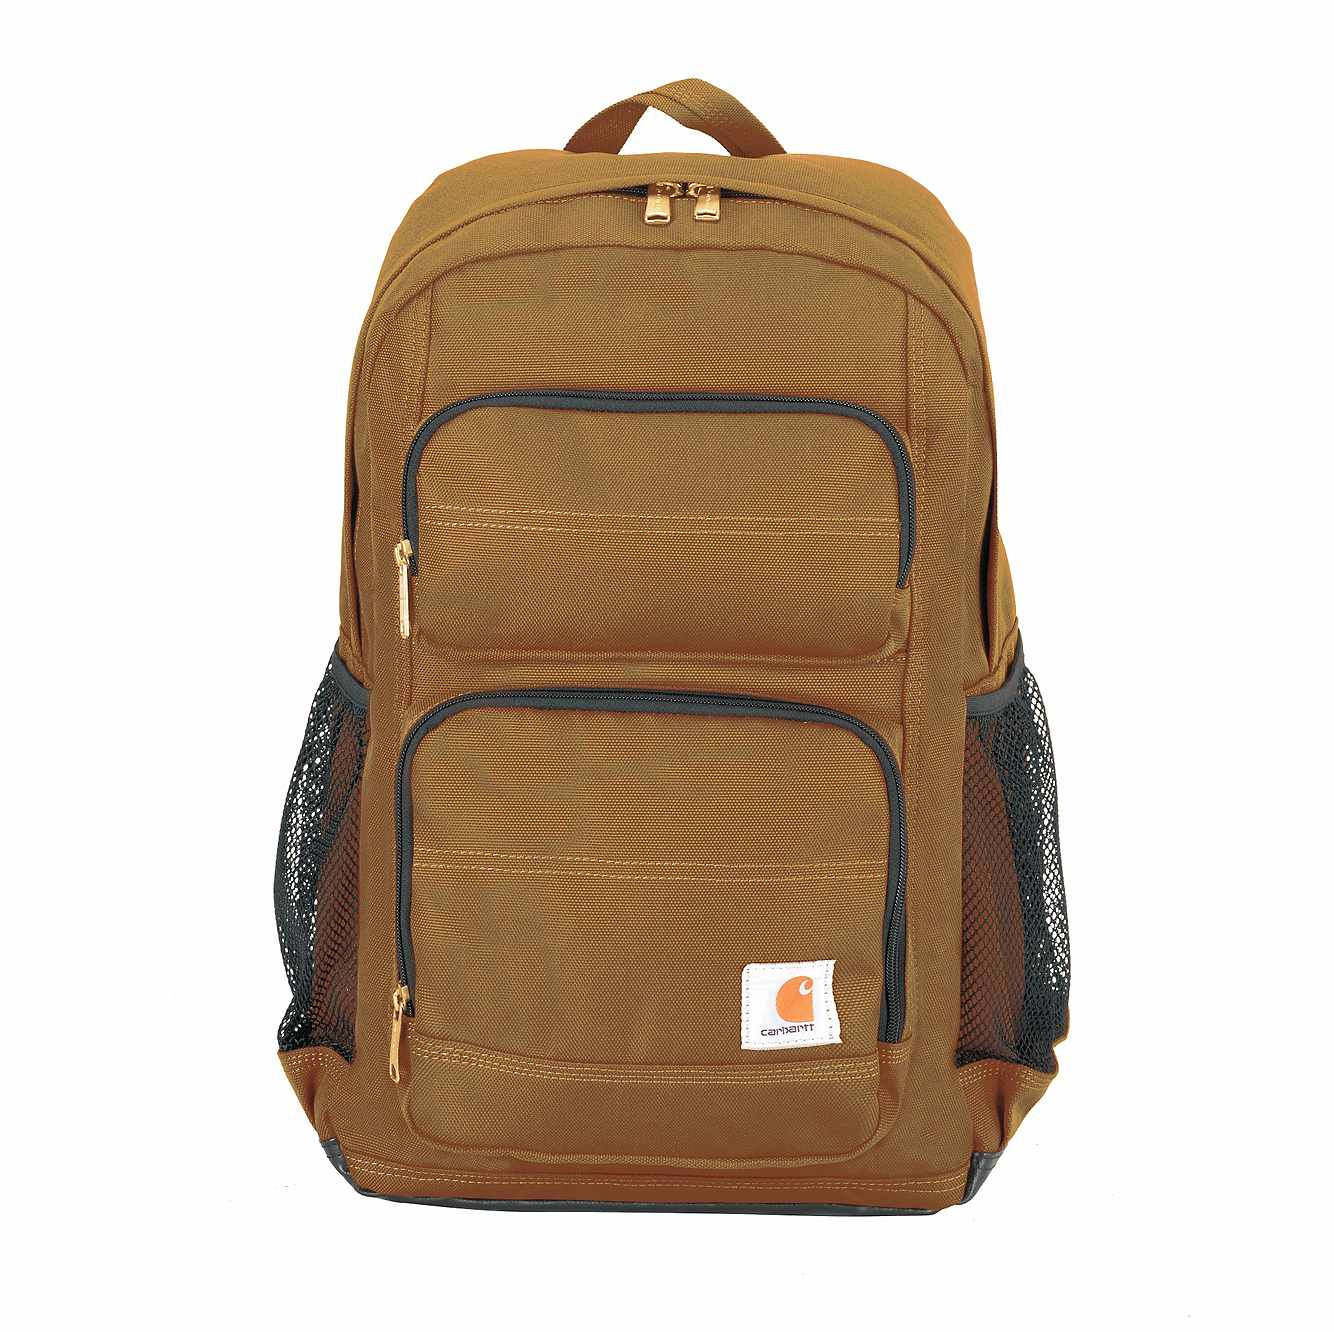 Picture of Legacy Standard Work Pack in Carhartt Brown